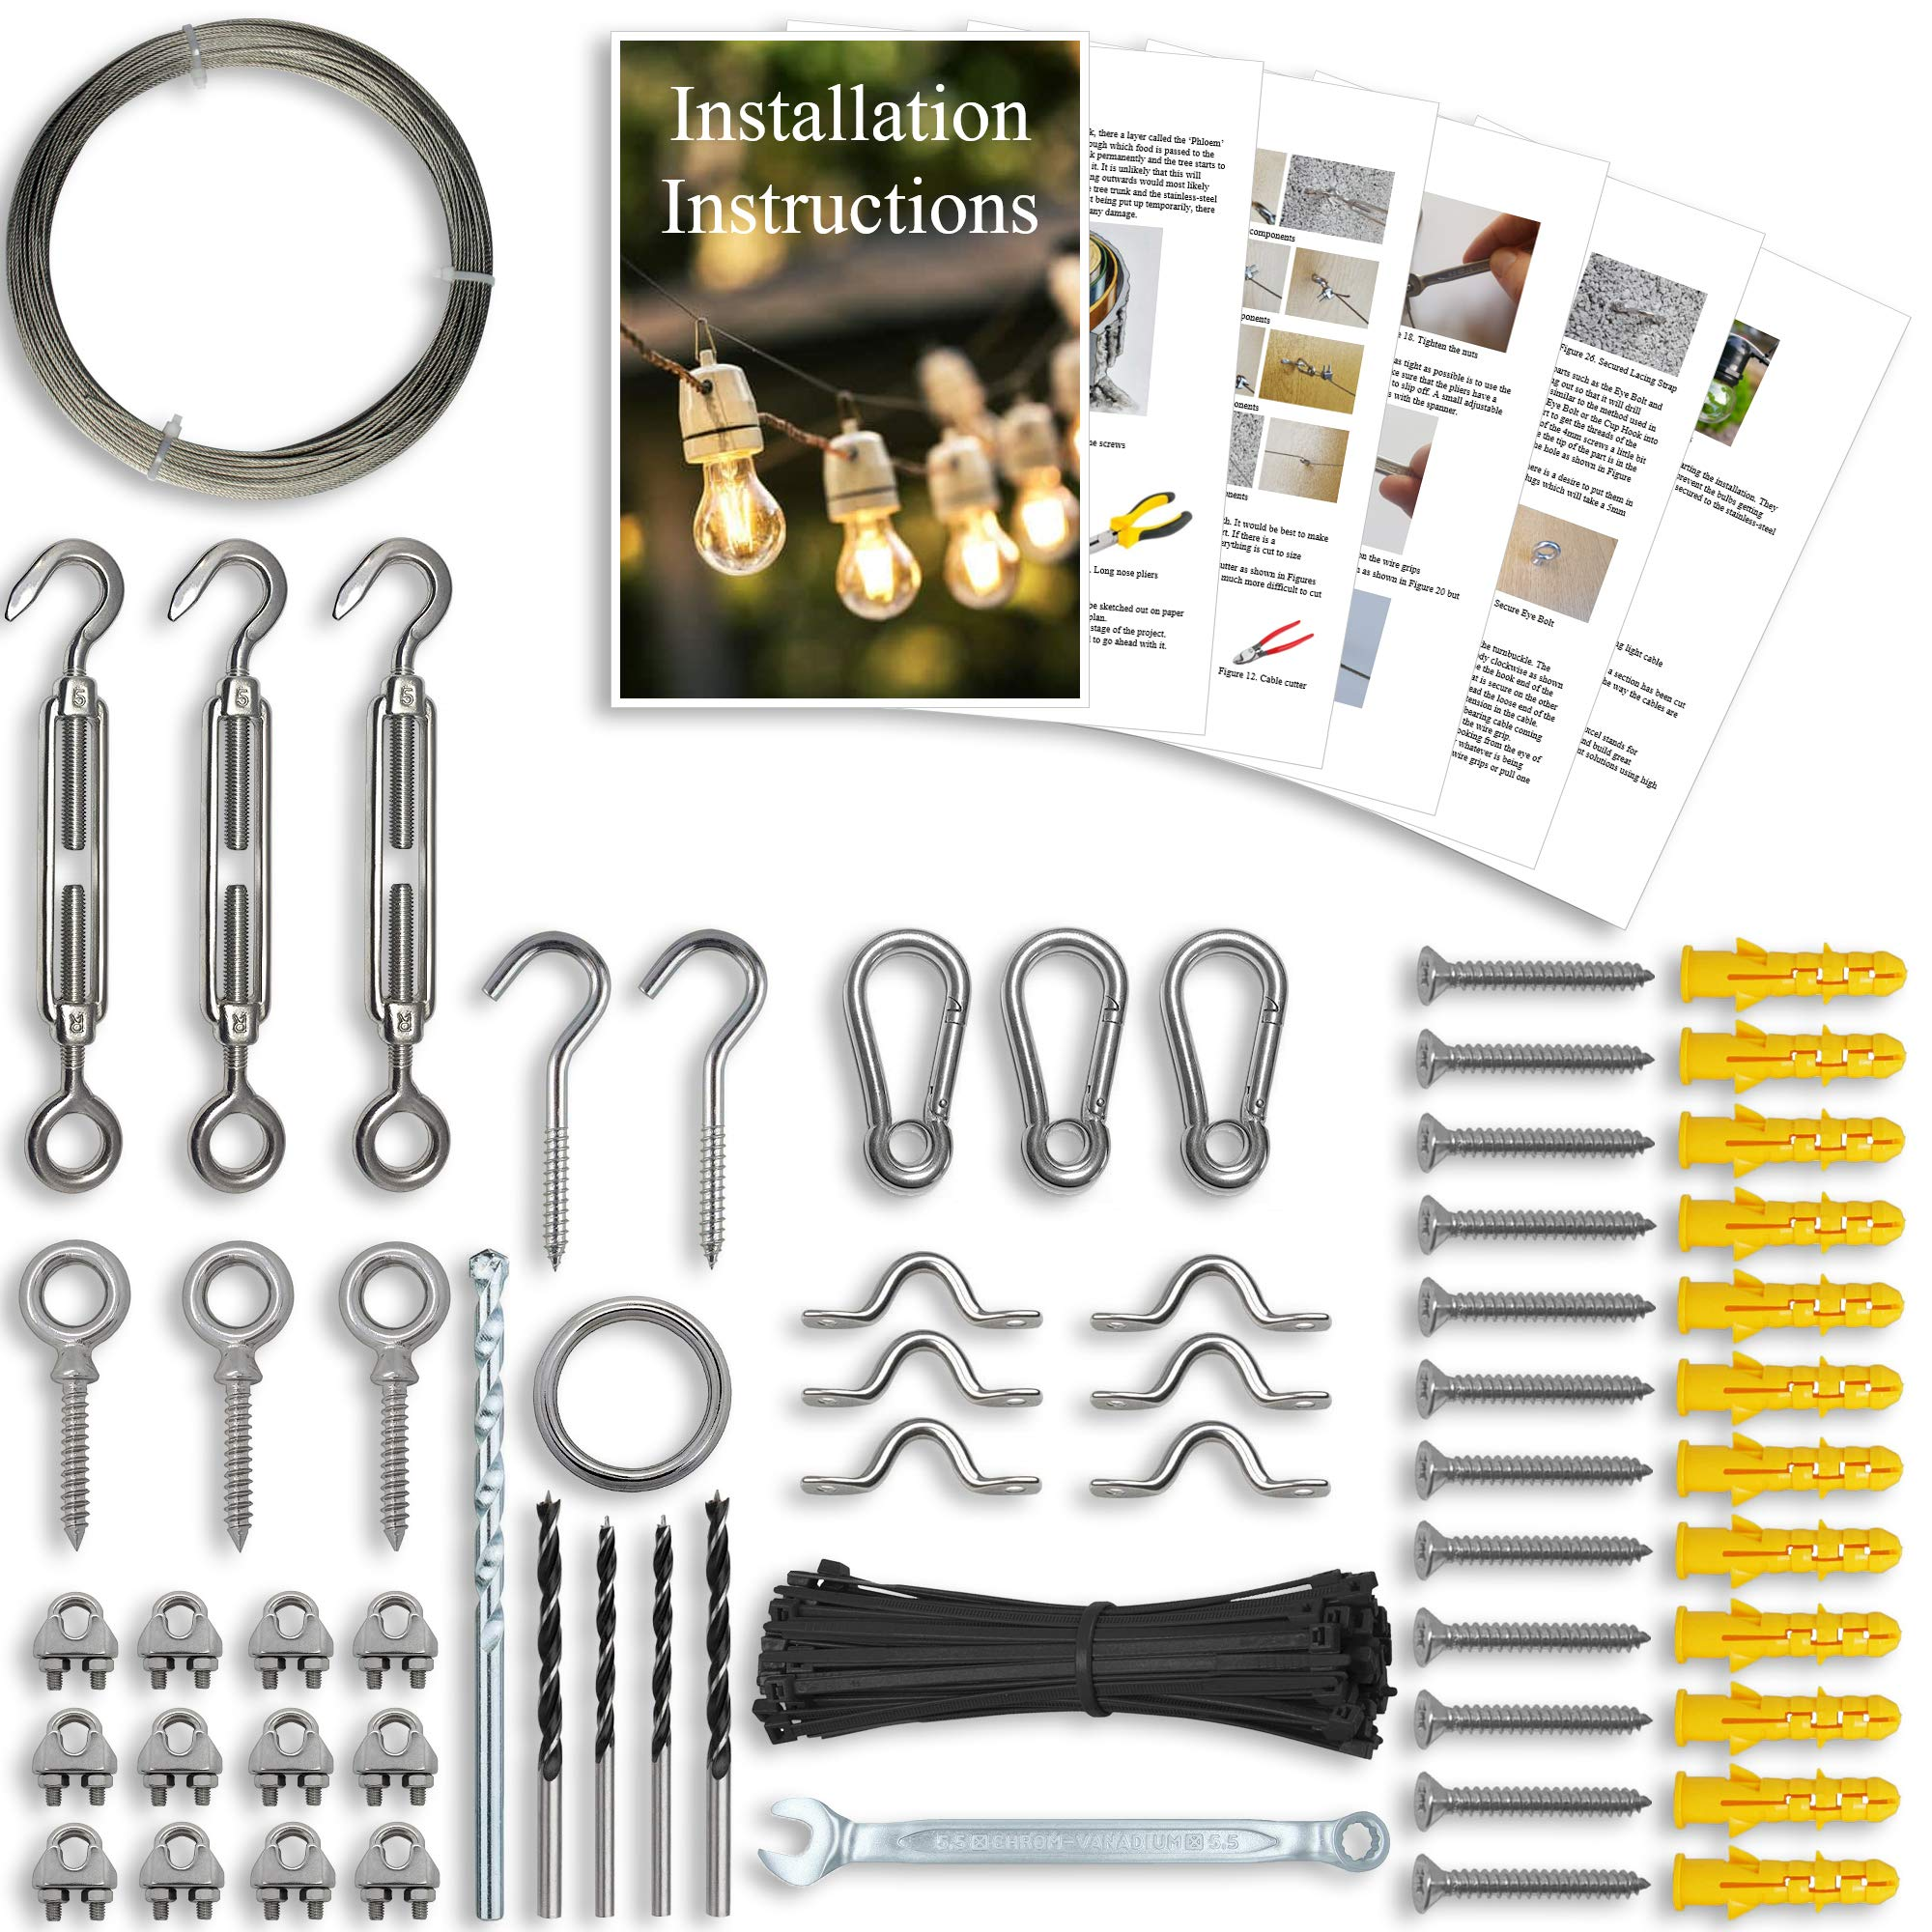 String Lights Hanging Kit - String Light Suspension Kit, Installation Kit for Outdoor Lighting, LED, Globe, Café, Patio Lights Etc. 164ft Guide Wire Cable and Parts Made from Stainless Steel 316